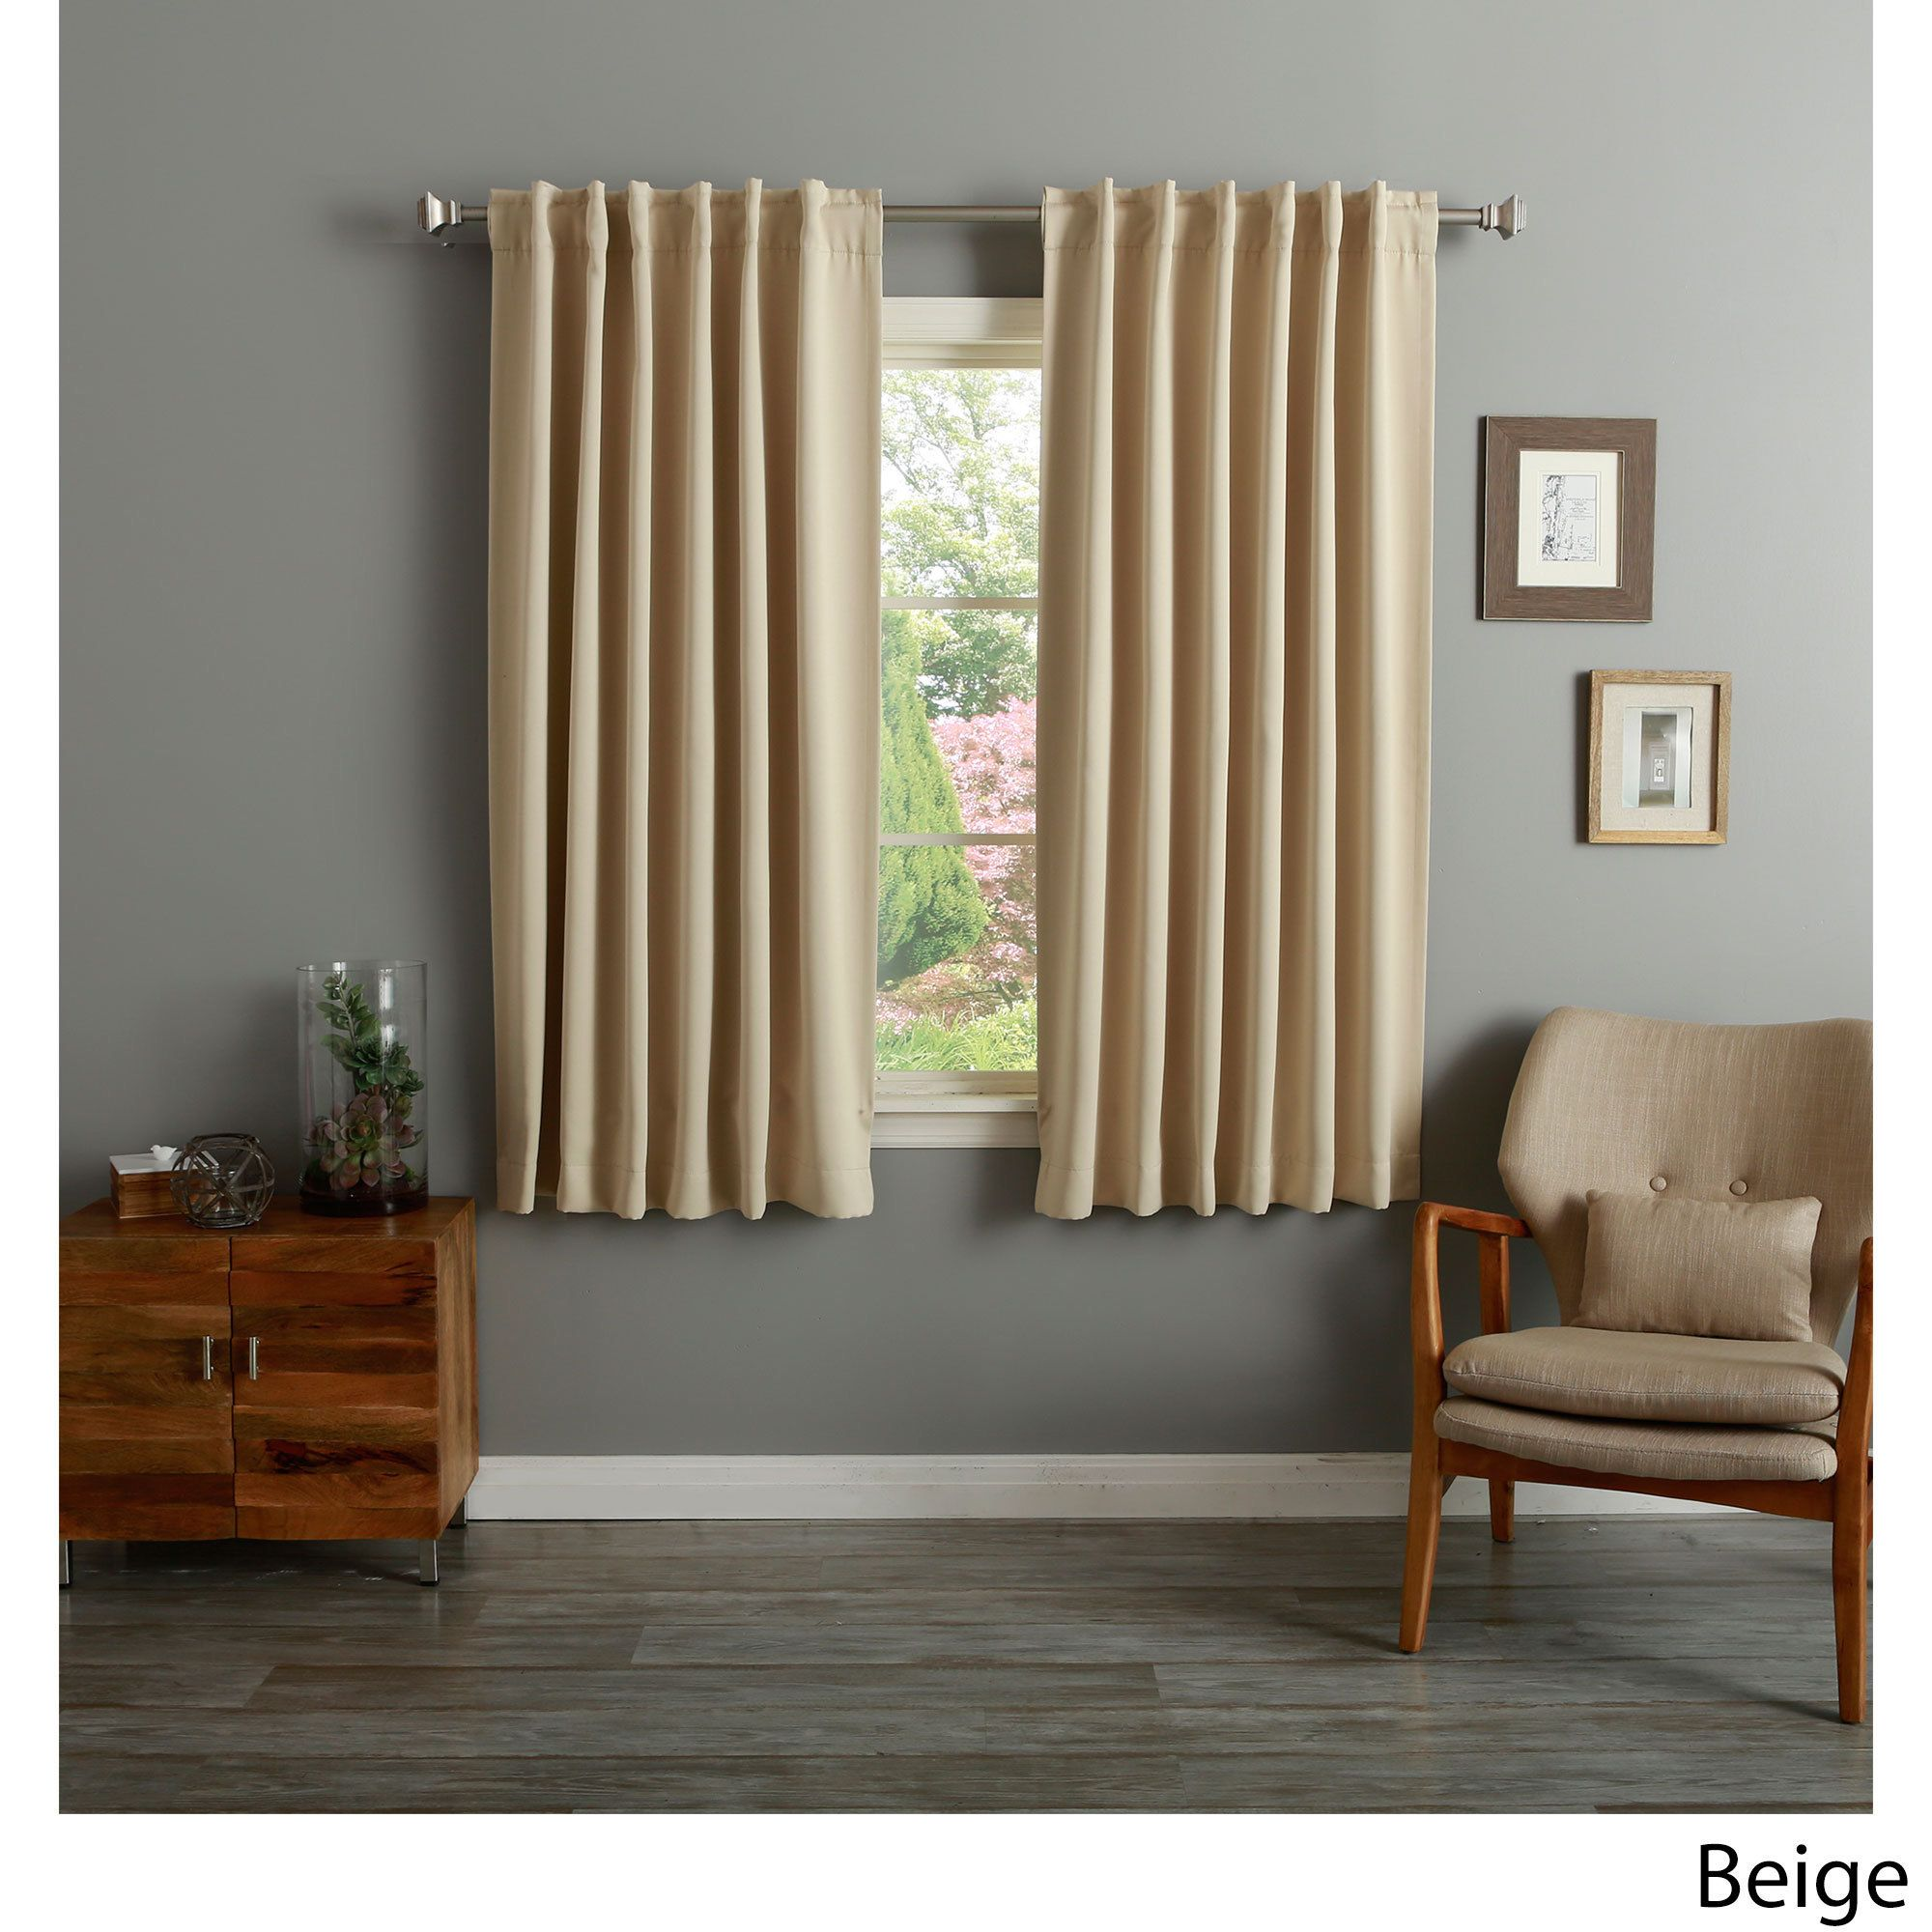 Curtain pair overstock shopping great deals on lights out curtains -  41 Solid Insulated Thermal Blackout 63 Inch Curtain Panel Pair Overstock Shopping Great